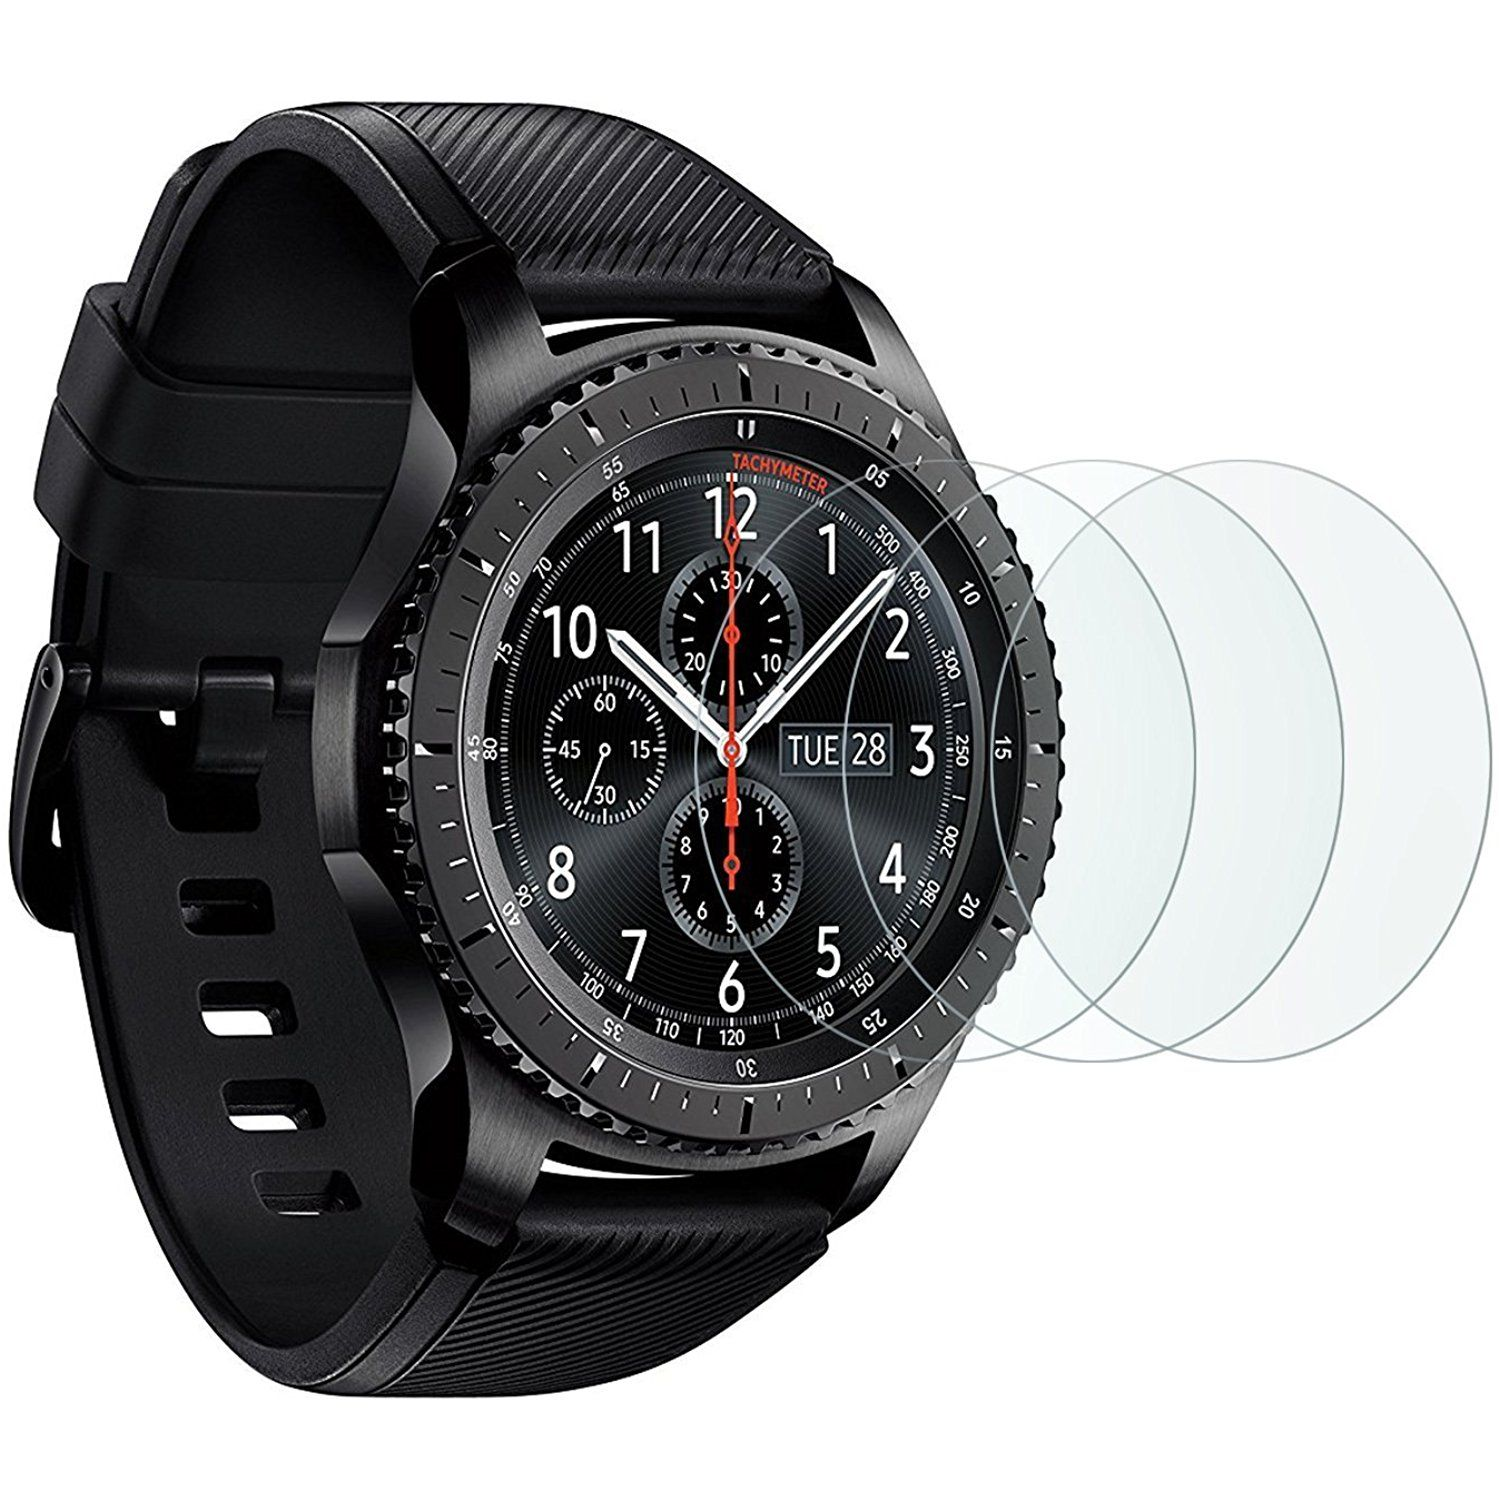 Samsung Gear S3 Screen Protector 3 Pack Omoton Full Coverage Tempered Glass Screen Protect Samsung Gear S3 Frontier Pack Film Smartwatch Bluetooth